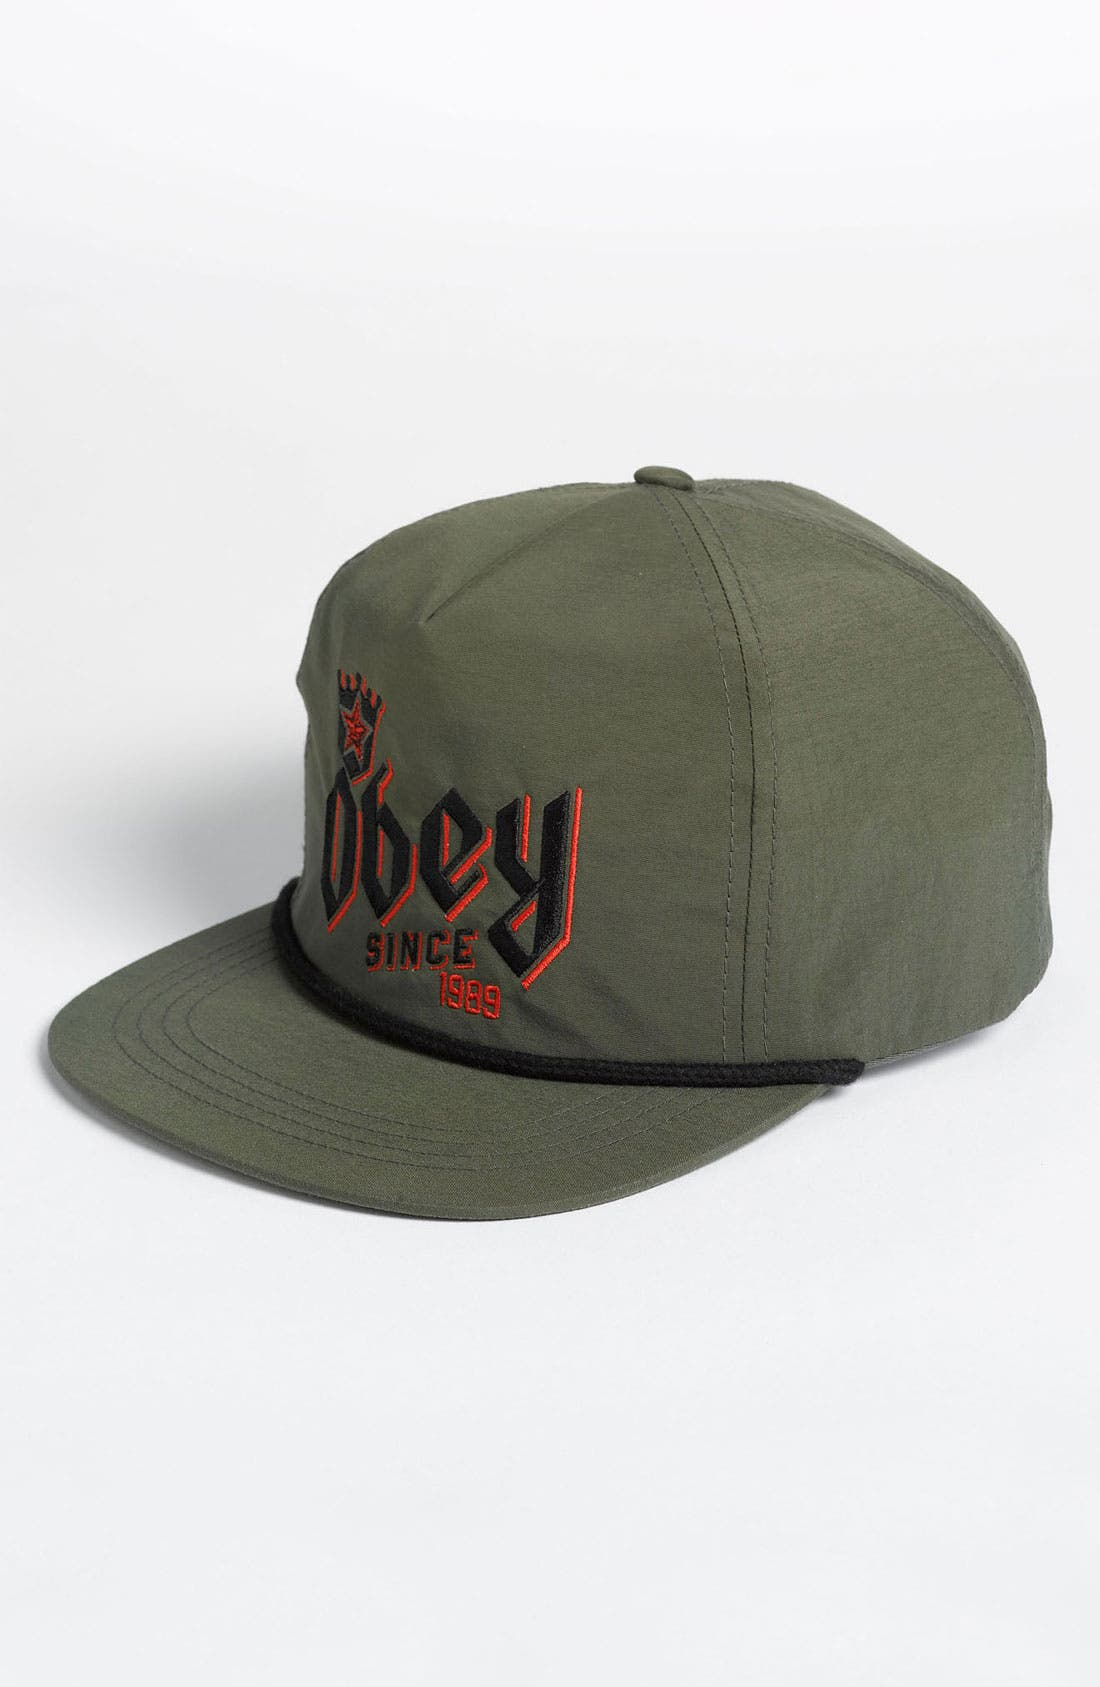 Alternate Image 1 Selected - Obey 'Beer King' Snapback Cap